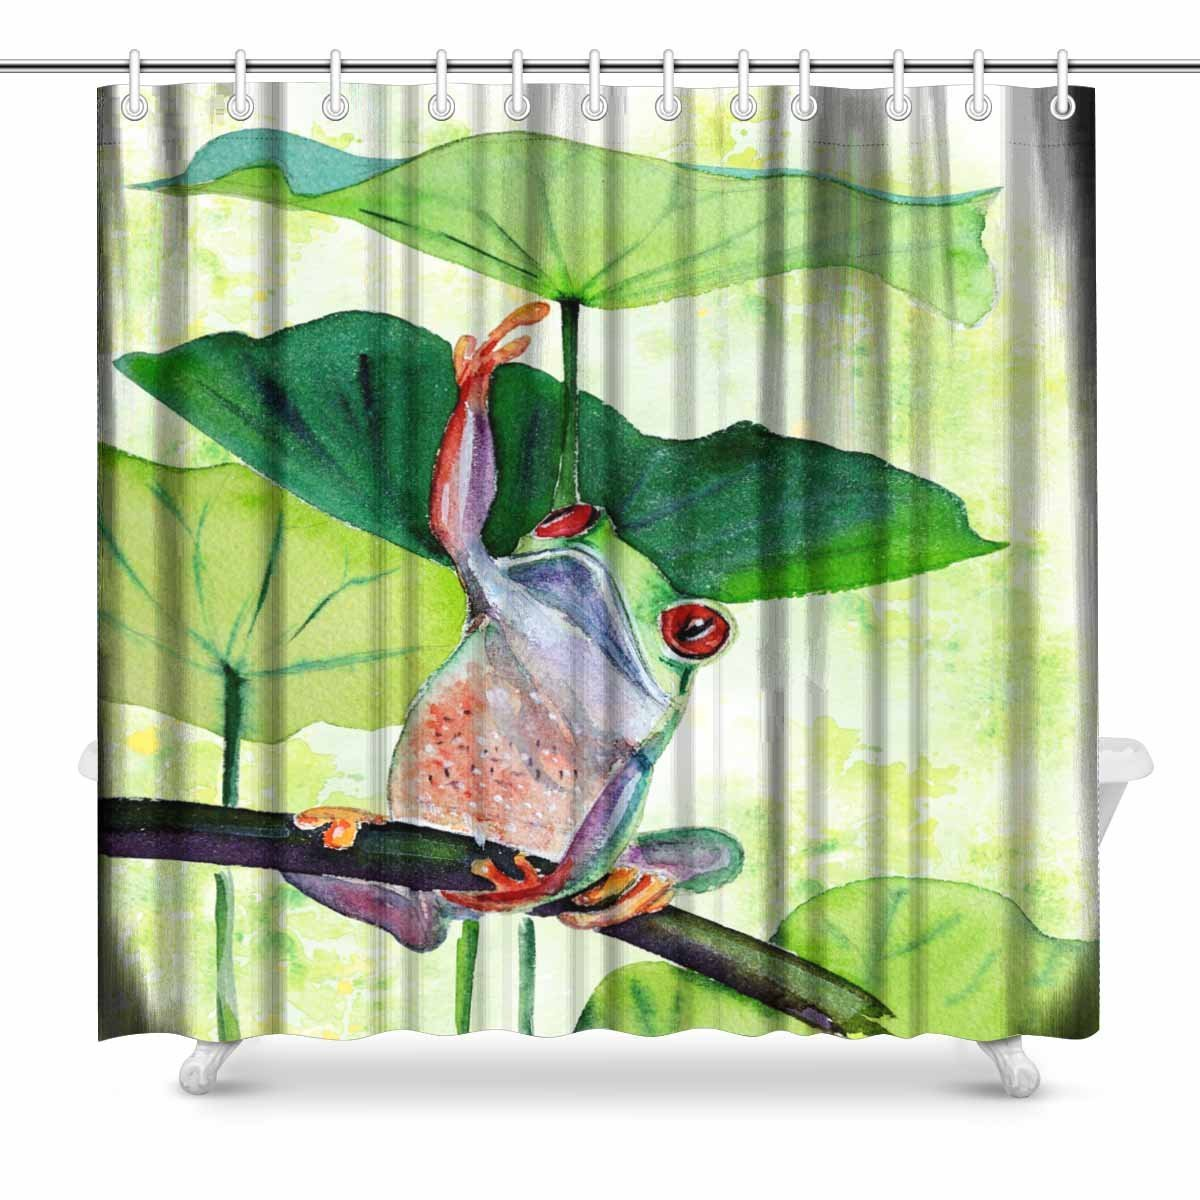 Us 26 59 Aplysia Frog And Lily Leaves Bathroom Accessories Shower Curtain With Hooks 72 Inches In Shower Curtains From Home Garden On Aliexpress